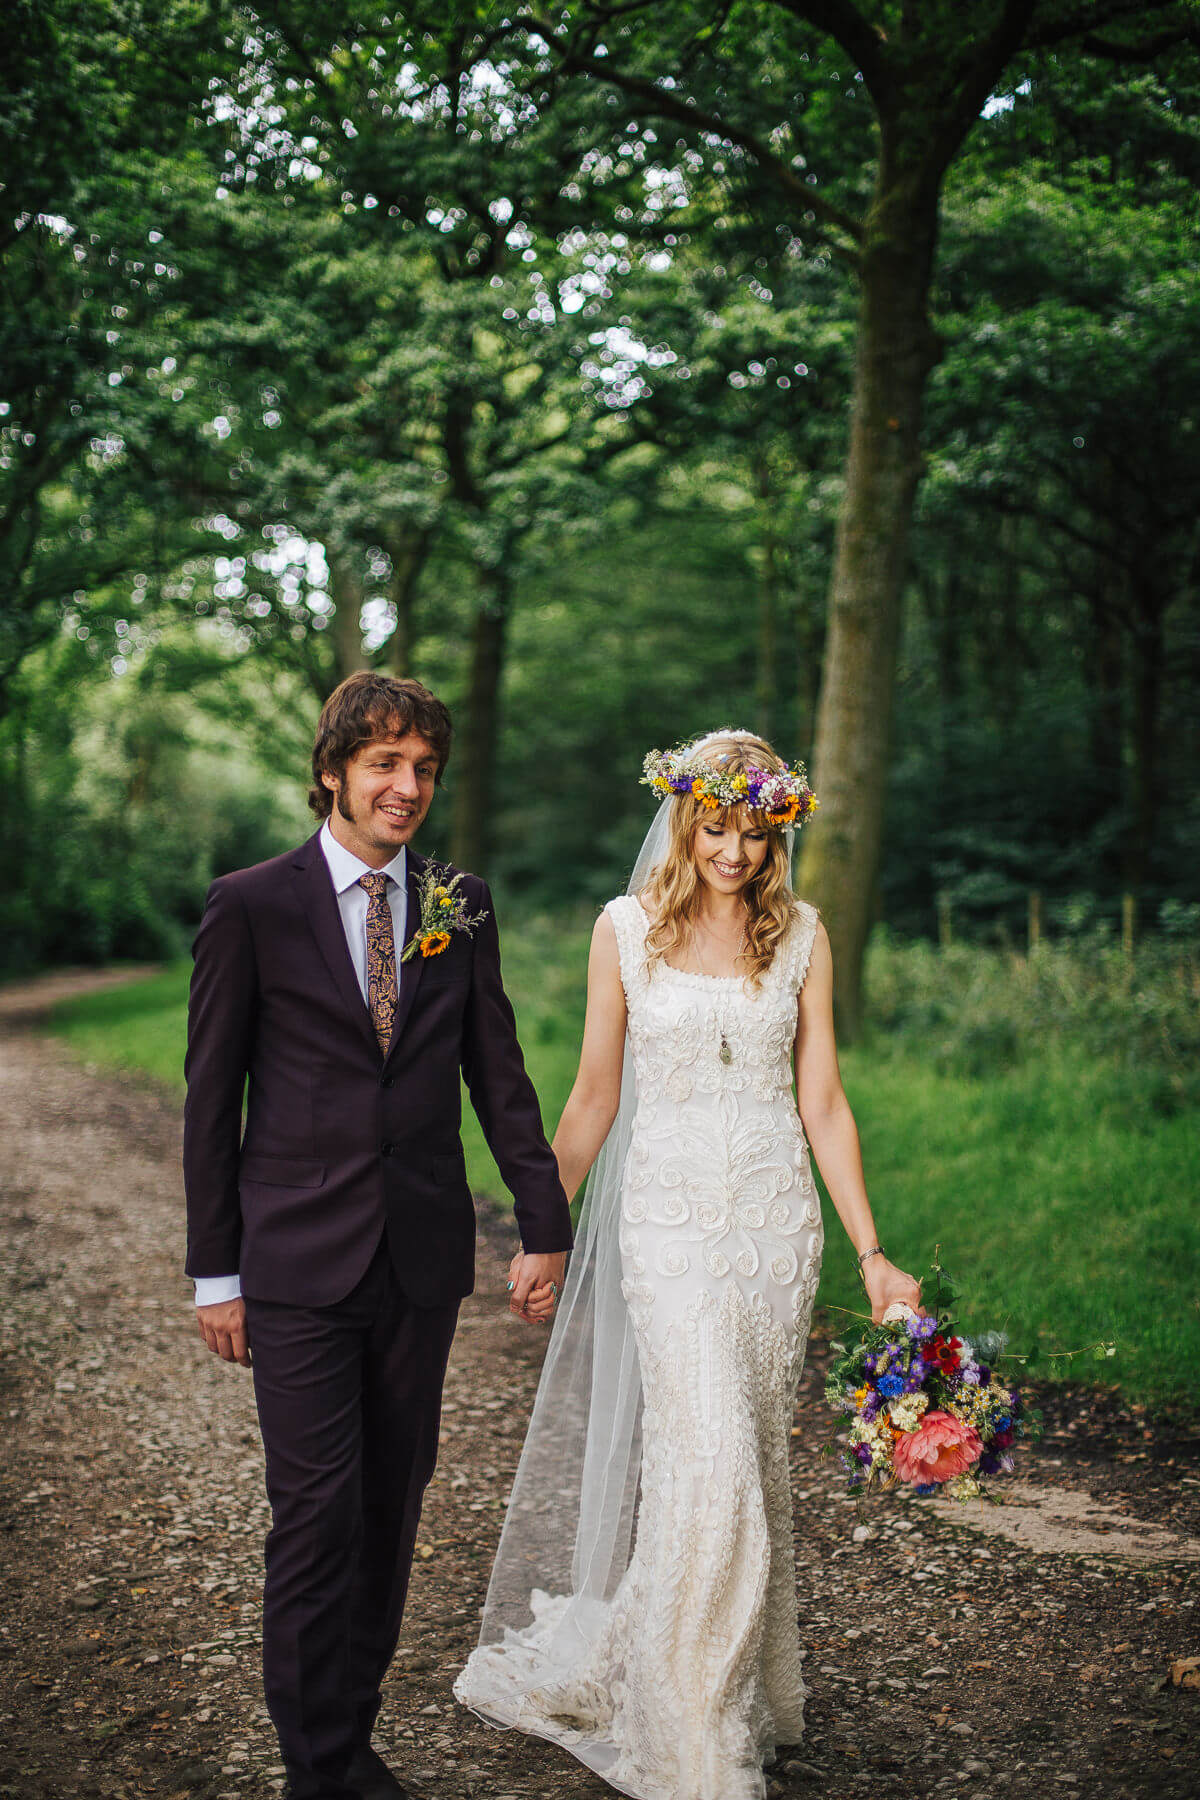 Relaxed photo at a Boho vintage wedding